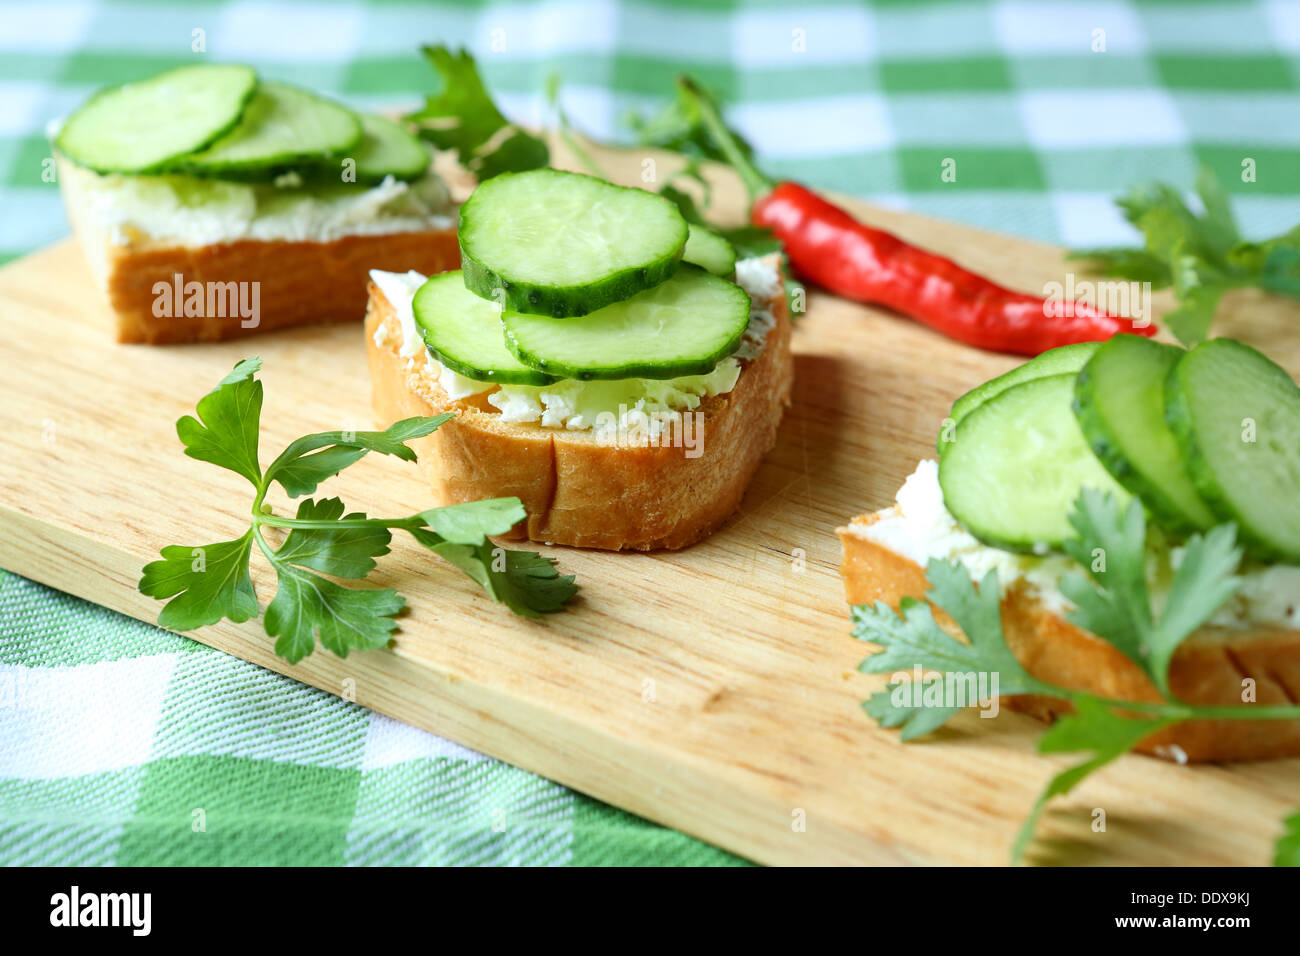 canape with cheese and fresh cucumber, food close up - Stock Image